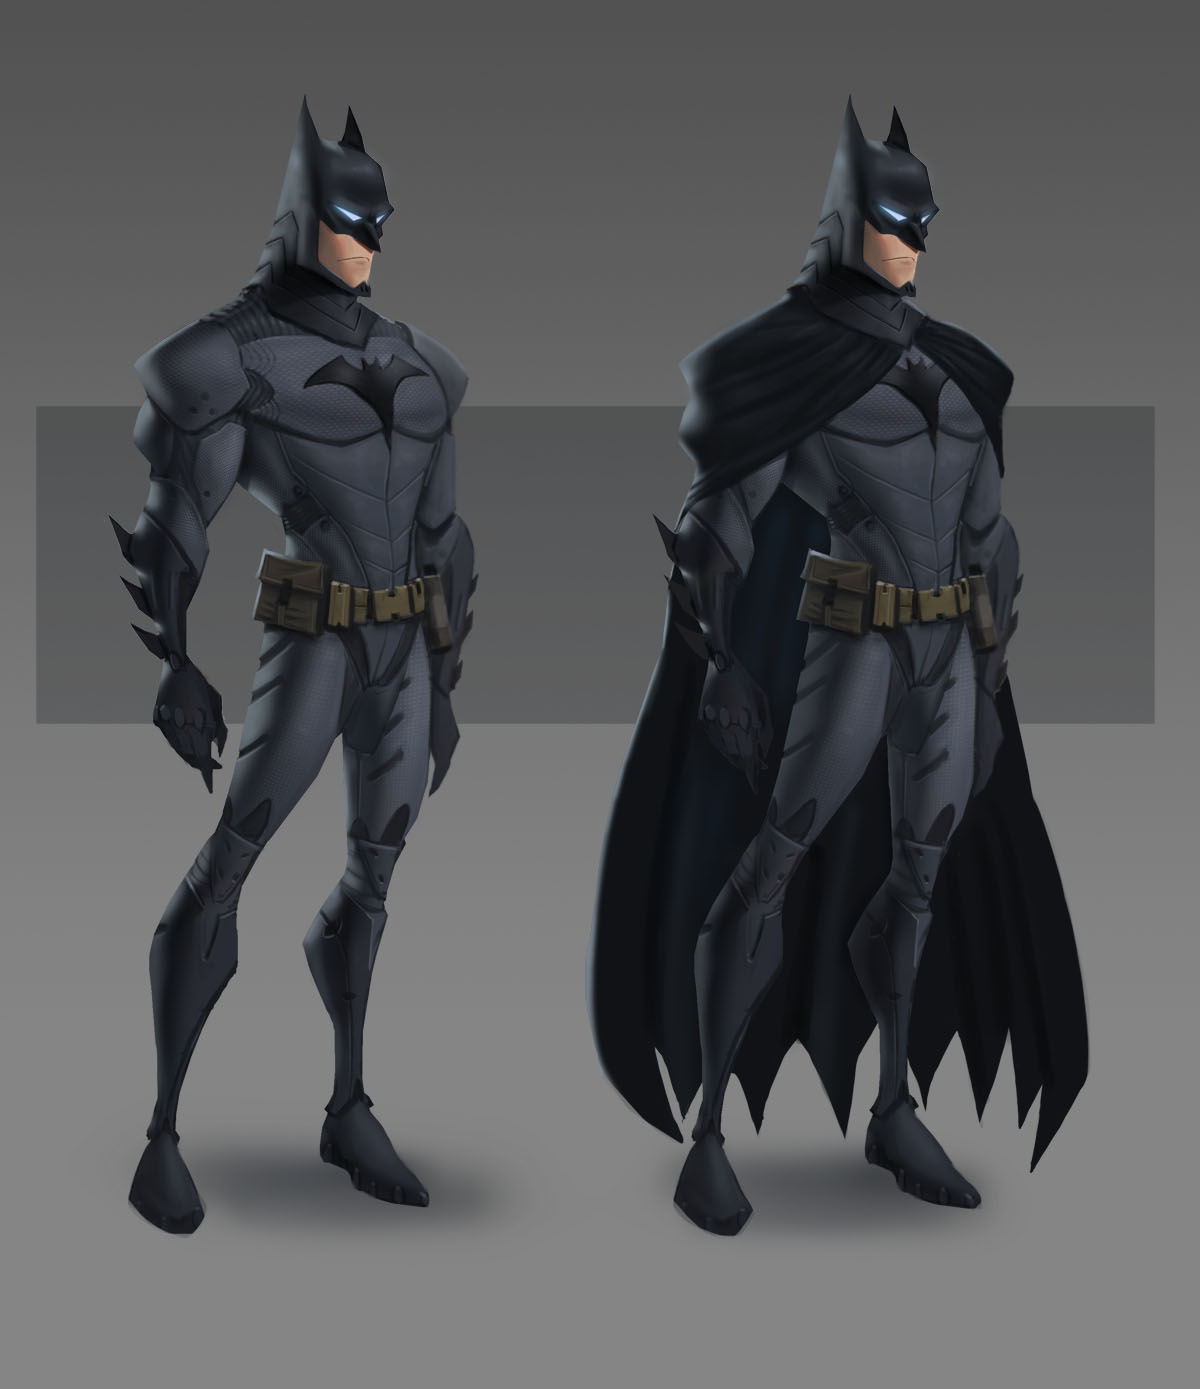 Art Of Araya: Justice League CG Movie Concepts